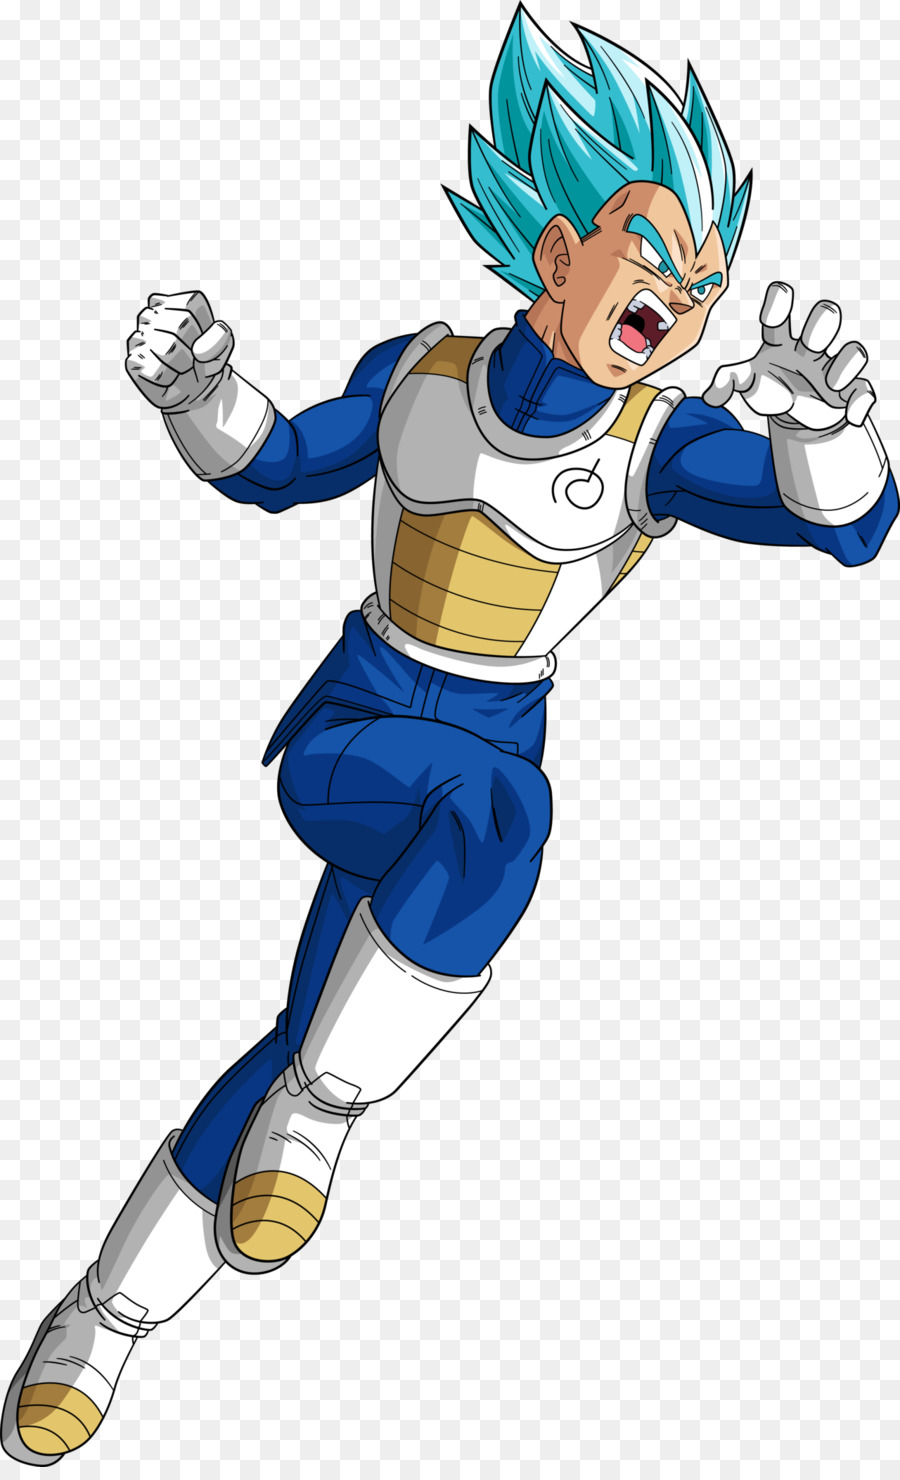 Vegeta goku frieza baby cell dragon ball z png download 1280 2087 free transparent png - Dragon ball z baby cell ...